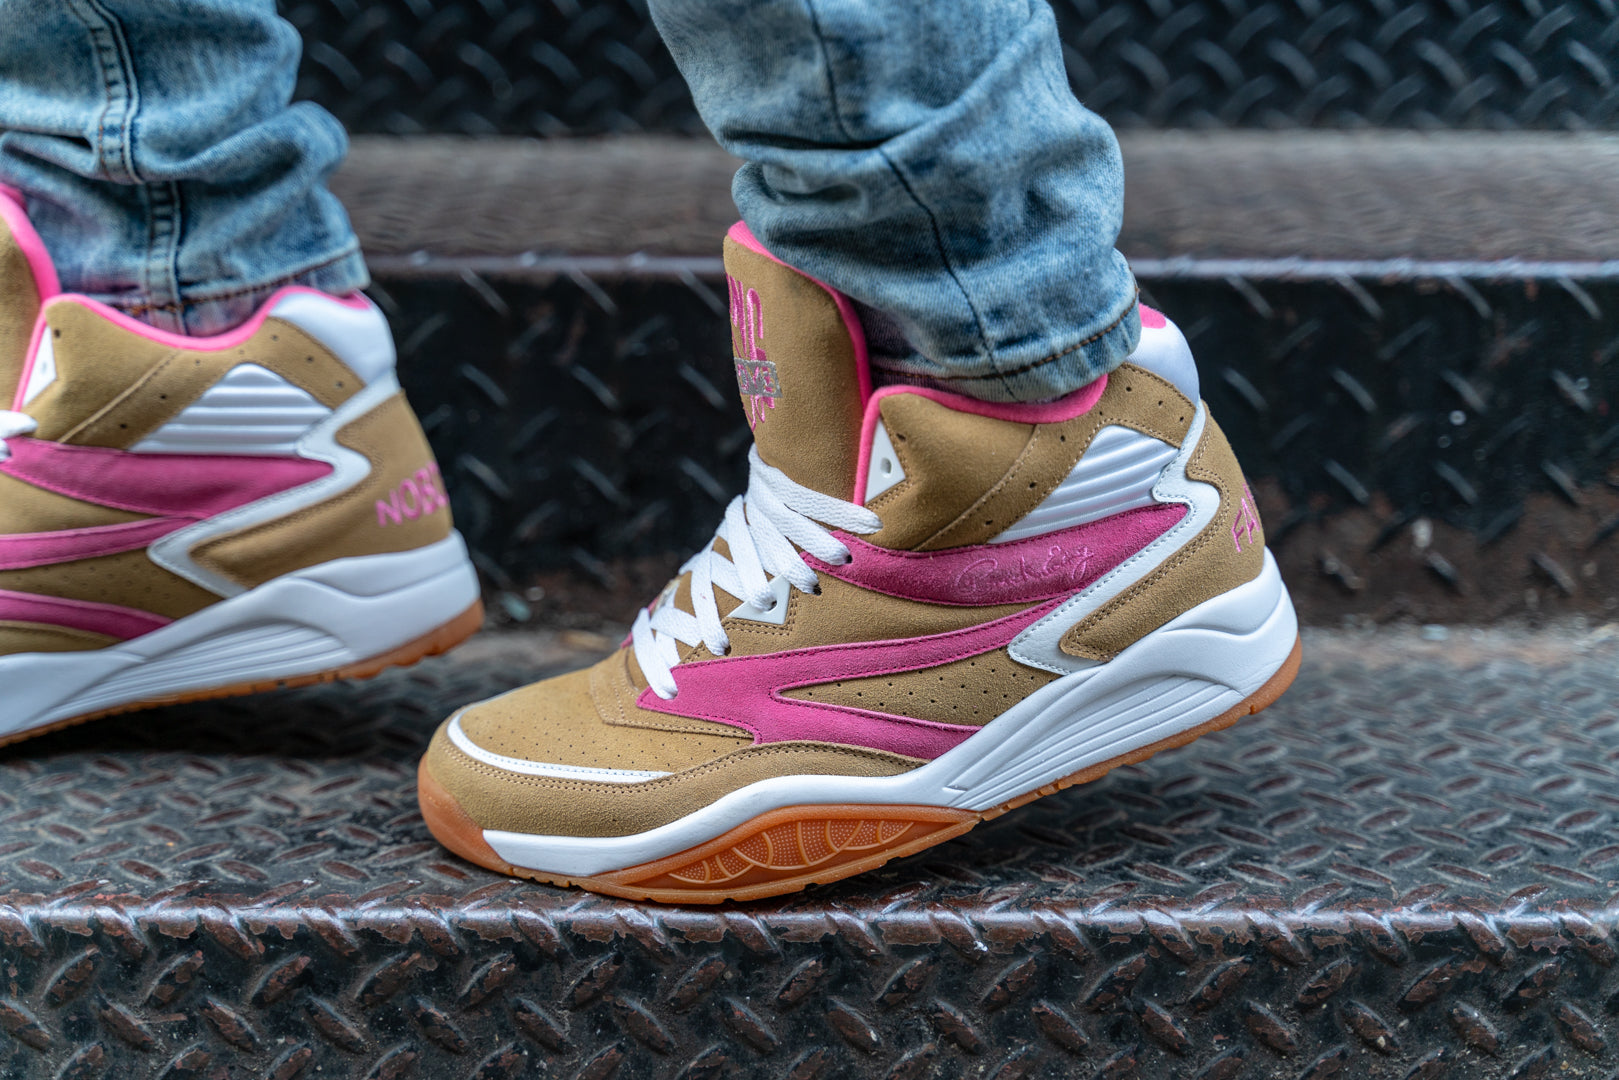 ewing sport lite famous nobodys on foot